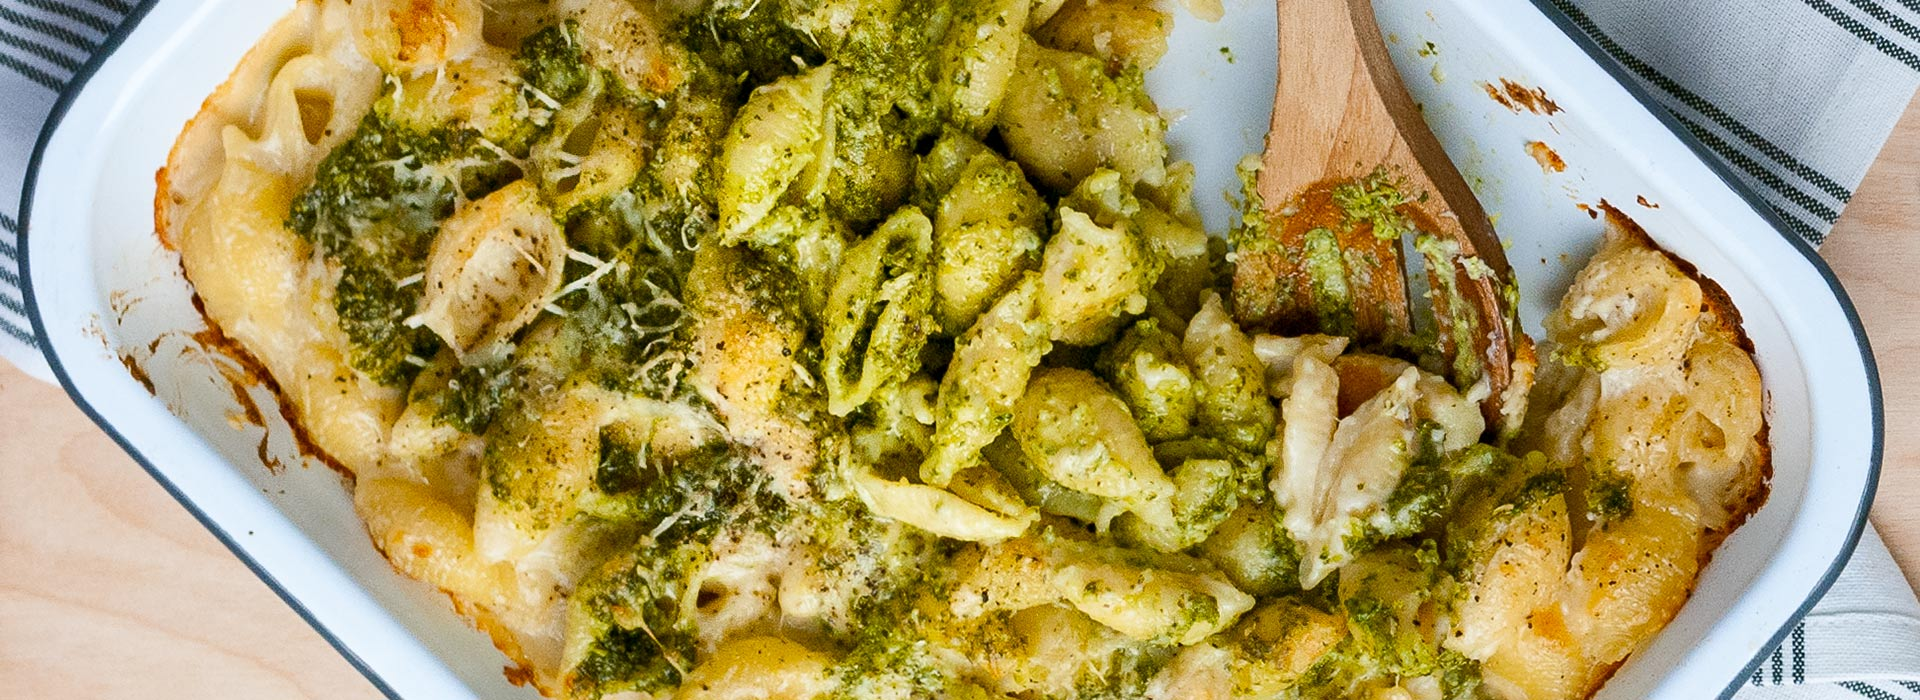 Kale Pesto Mac and Cheese